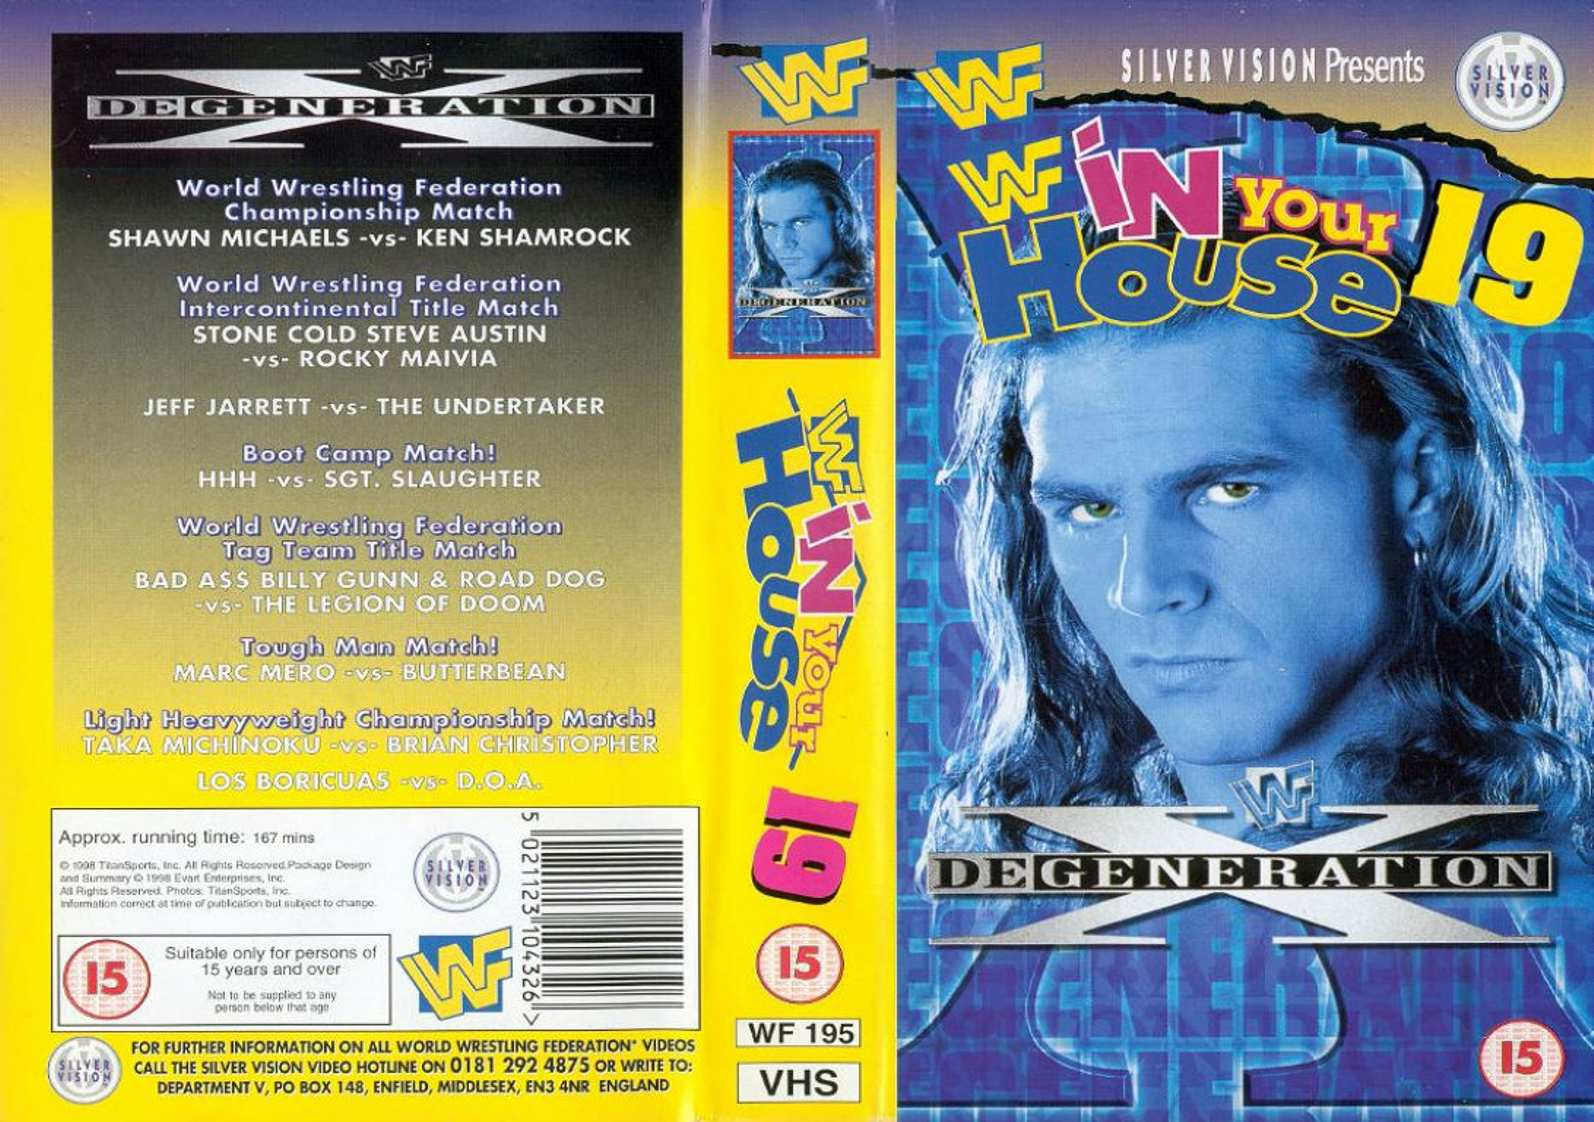 wwf_in_your_house_19_-_degeneration_x